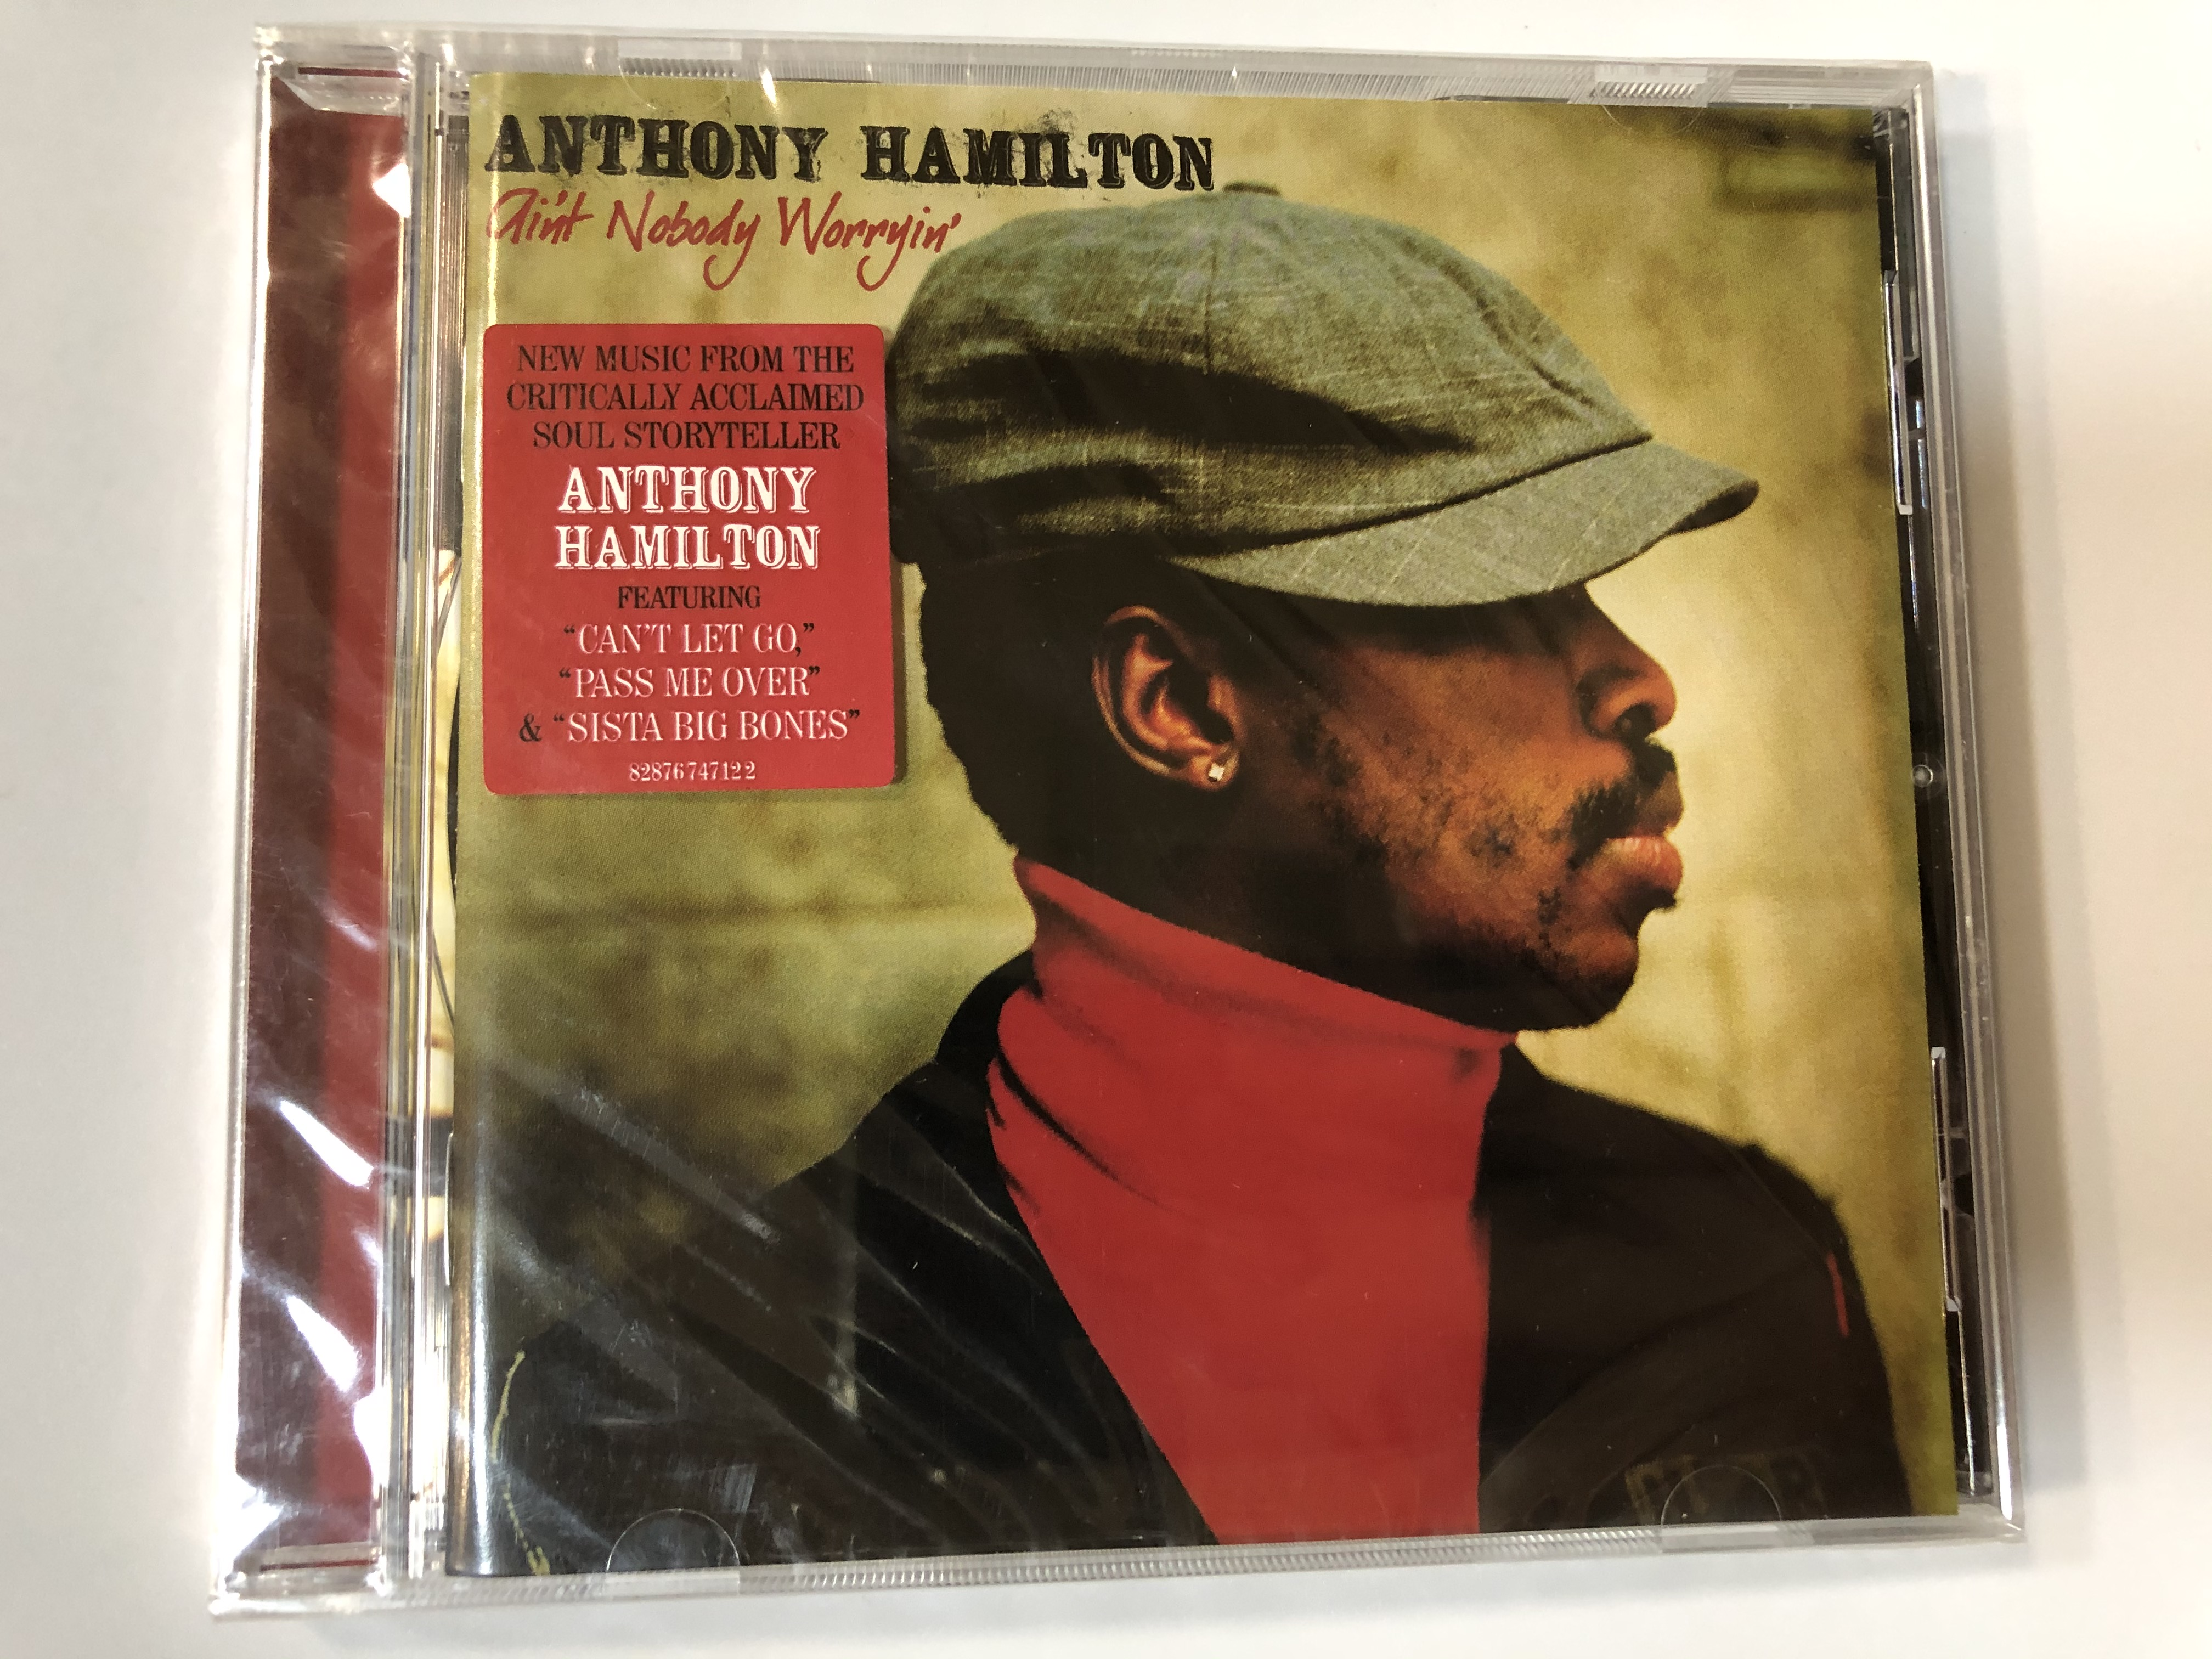 anthony-hamilton-ain-t-nobody-worryin-new-music-from-the-critically-acclaimed-soul-storyteller-anthony-hamilton-featuring-can-t-let-go-pass-me-over-sista-big-bones-sony-bm-1-.jpg